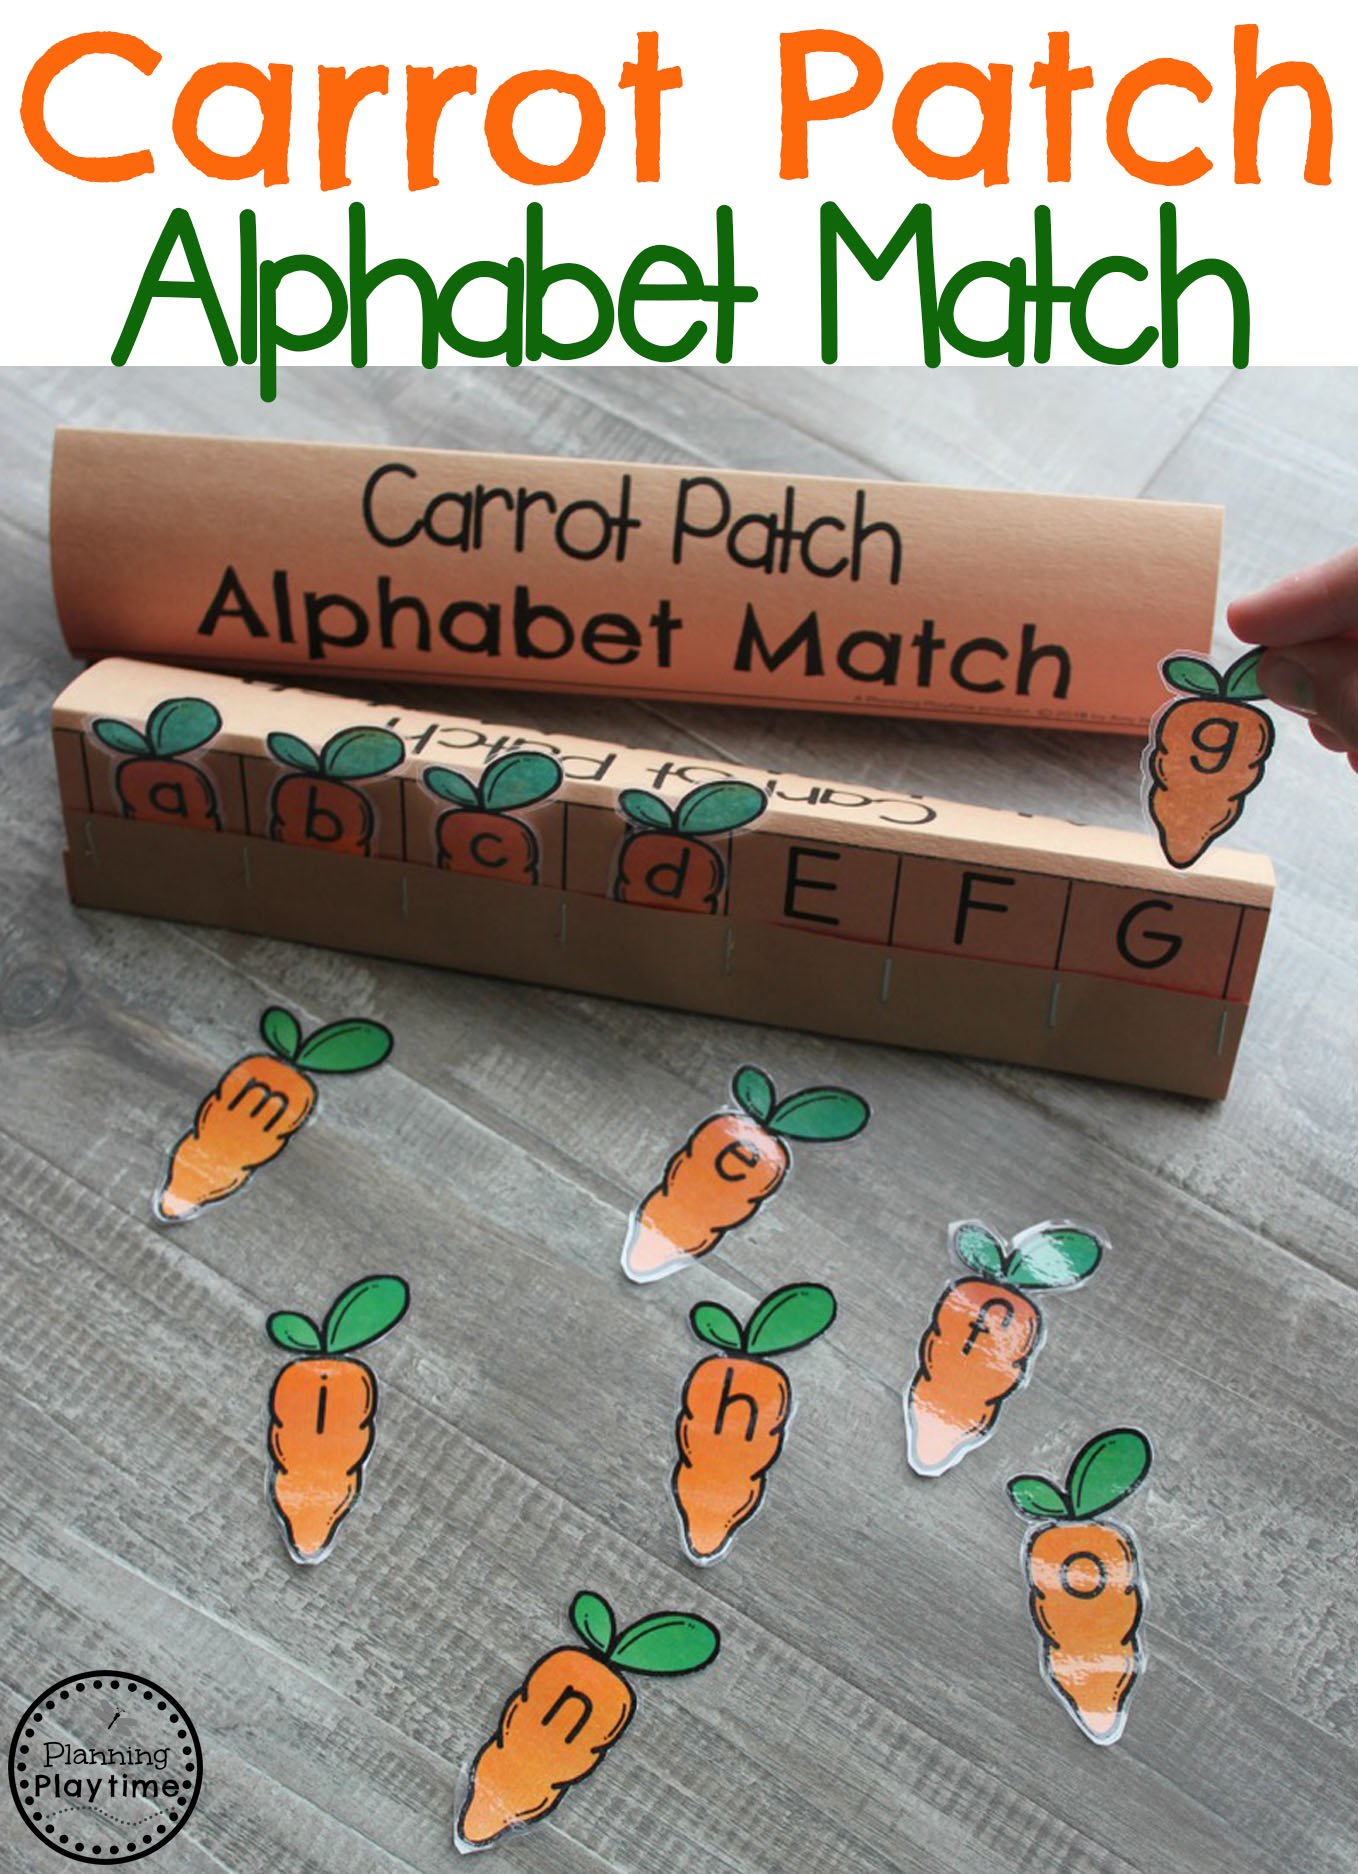 Easter Activities for Preschool - Carrot Patch Alphabet Match letter Recognition Game. #easter #preschool #easteractivities #easterpreschool #planningplaytime #alphabet #lettermatching #preschoolworksheets